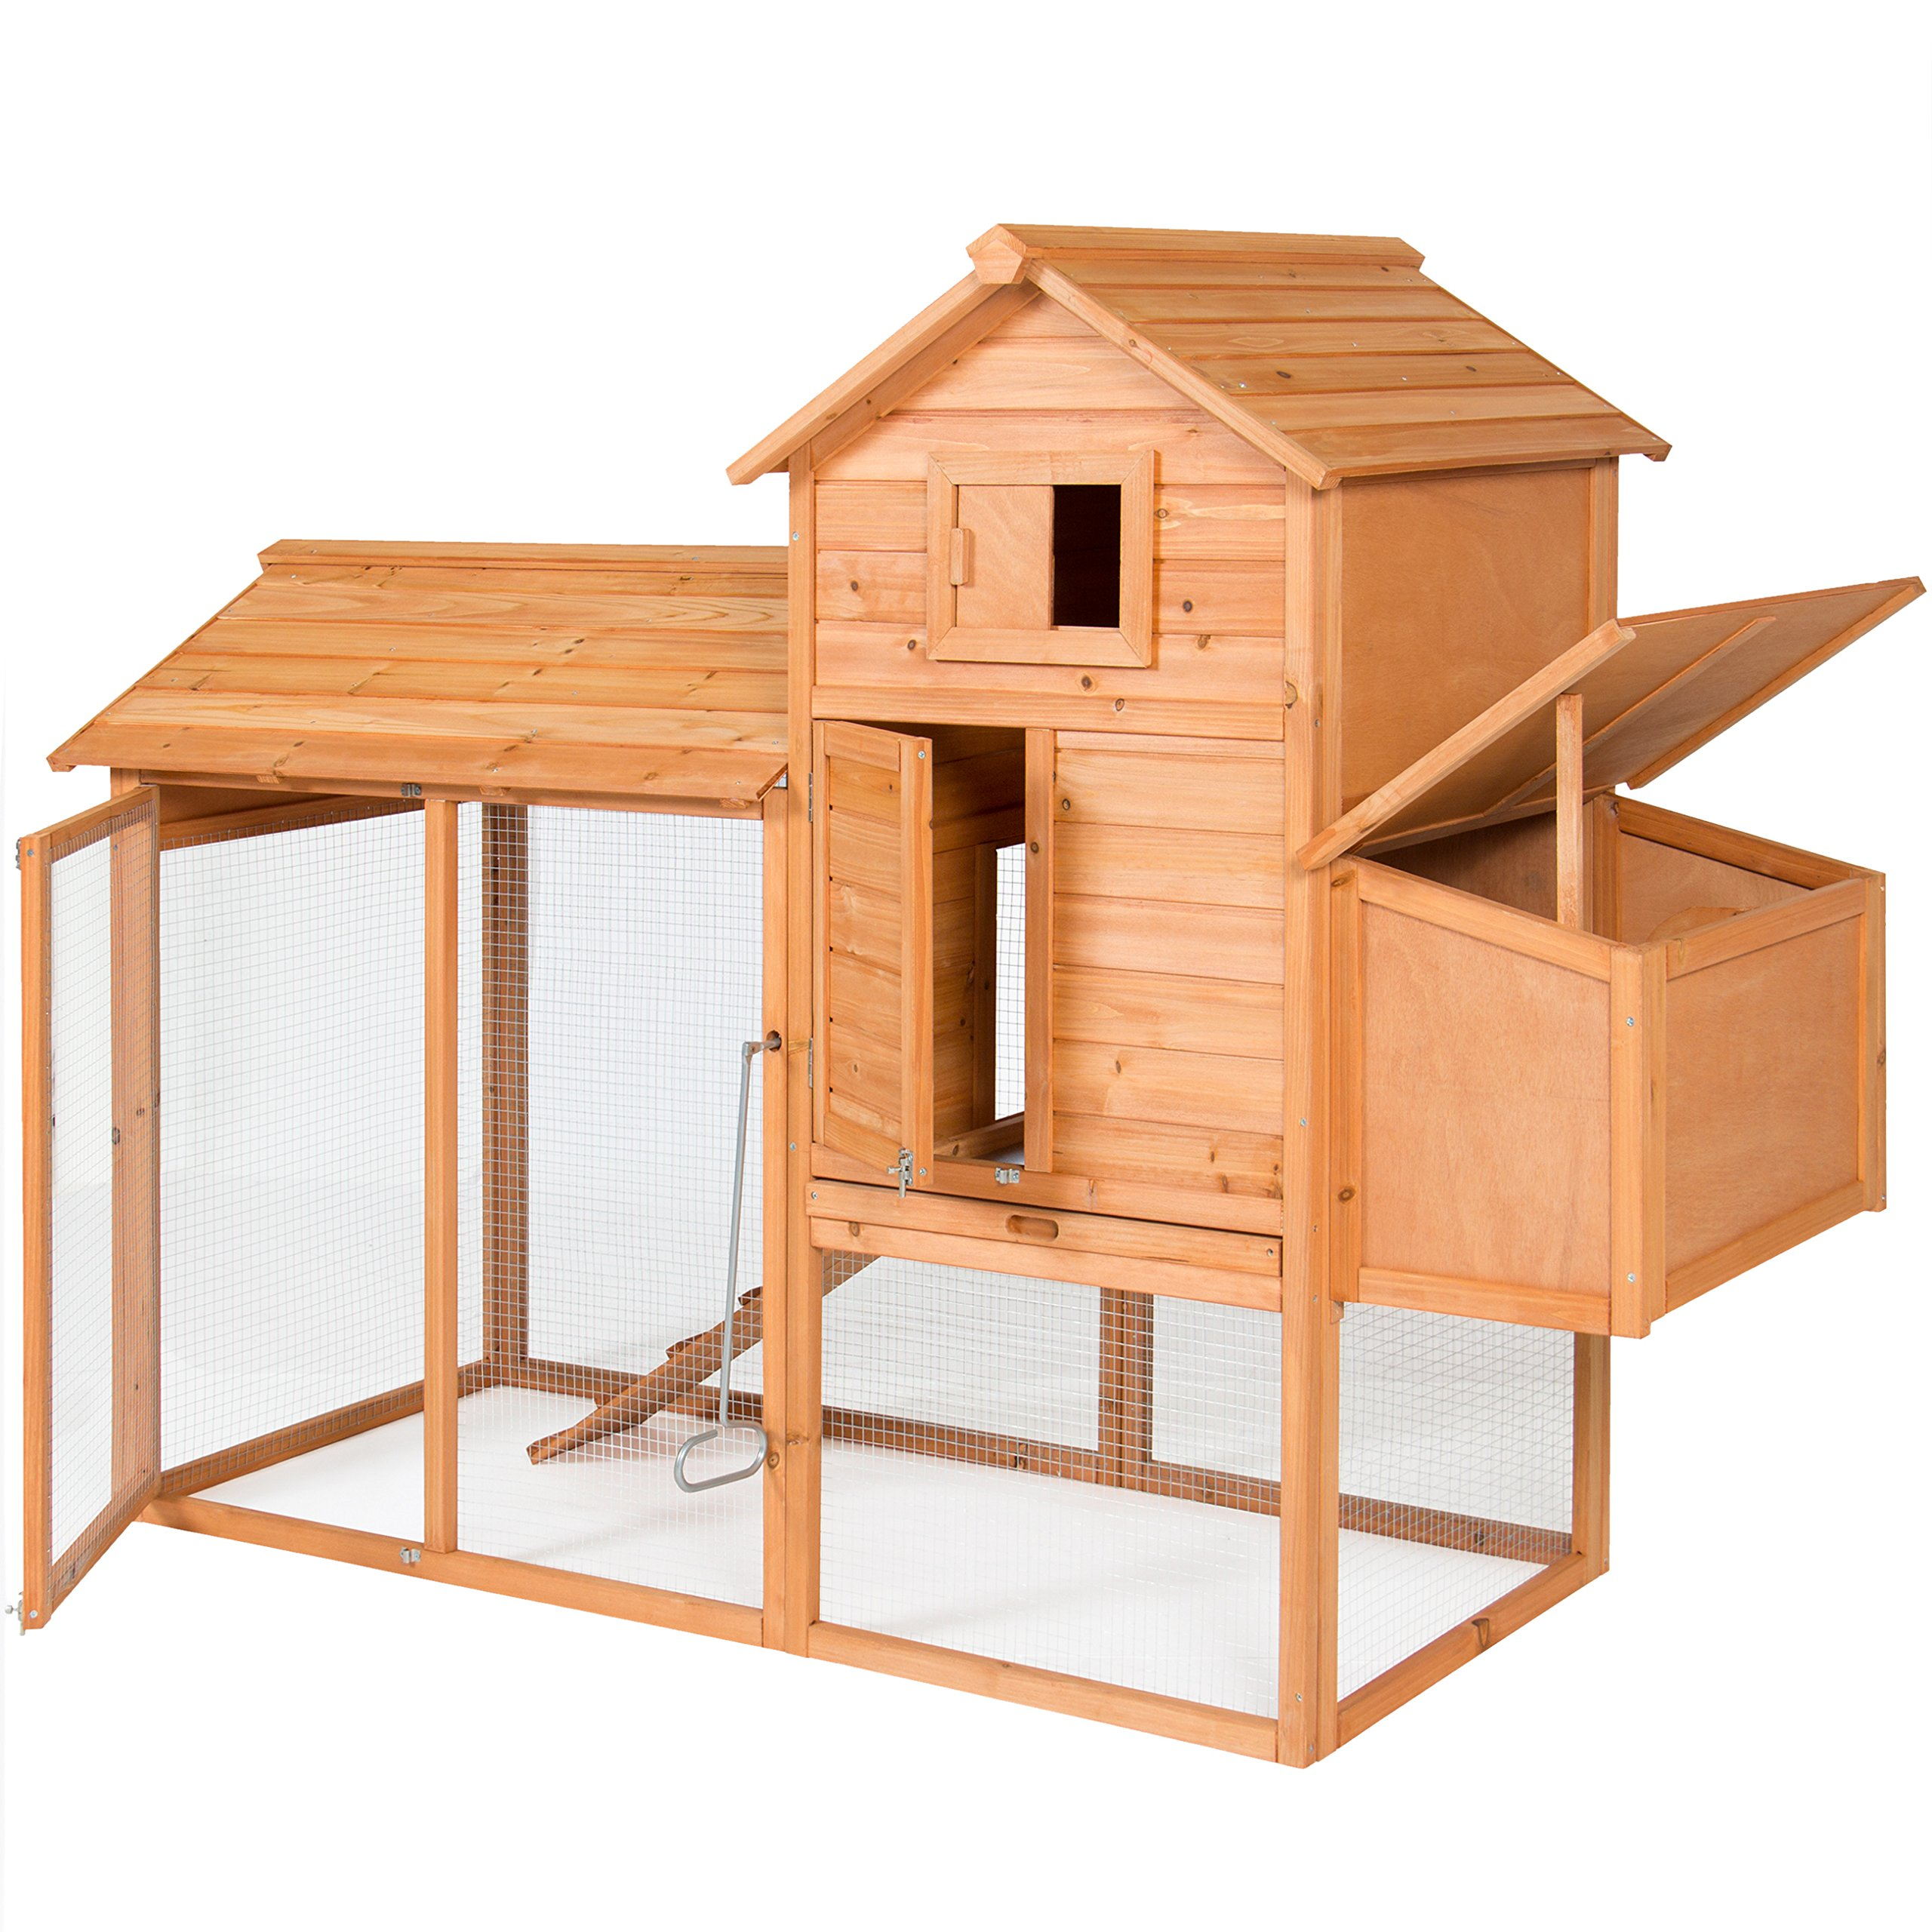 Best Choice Products 80'' Wooden Chicken Coop Backyard Nest Box Wood Hen House Poultry Cage Hutch